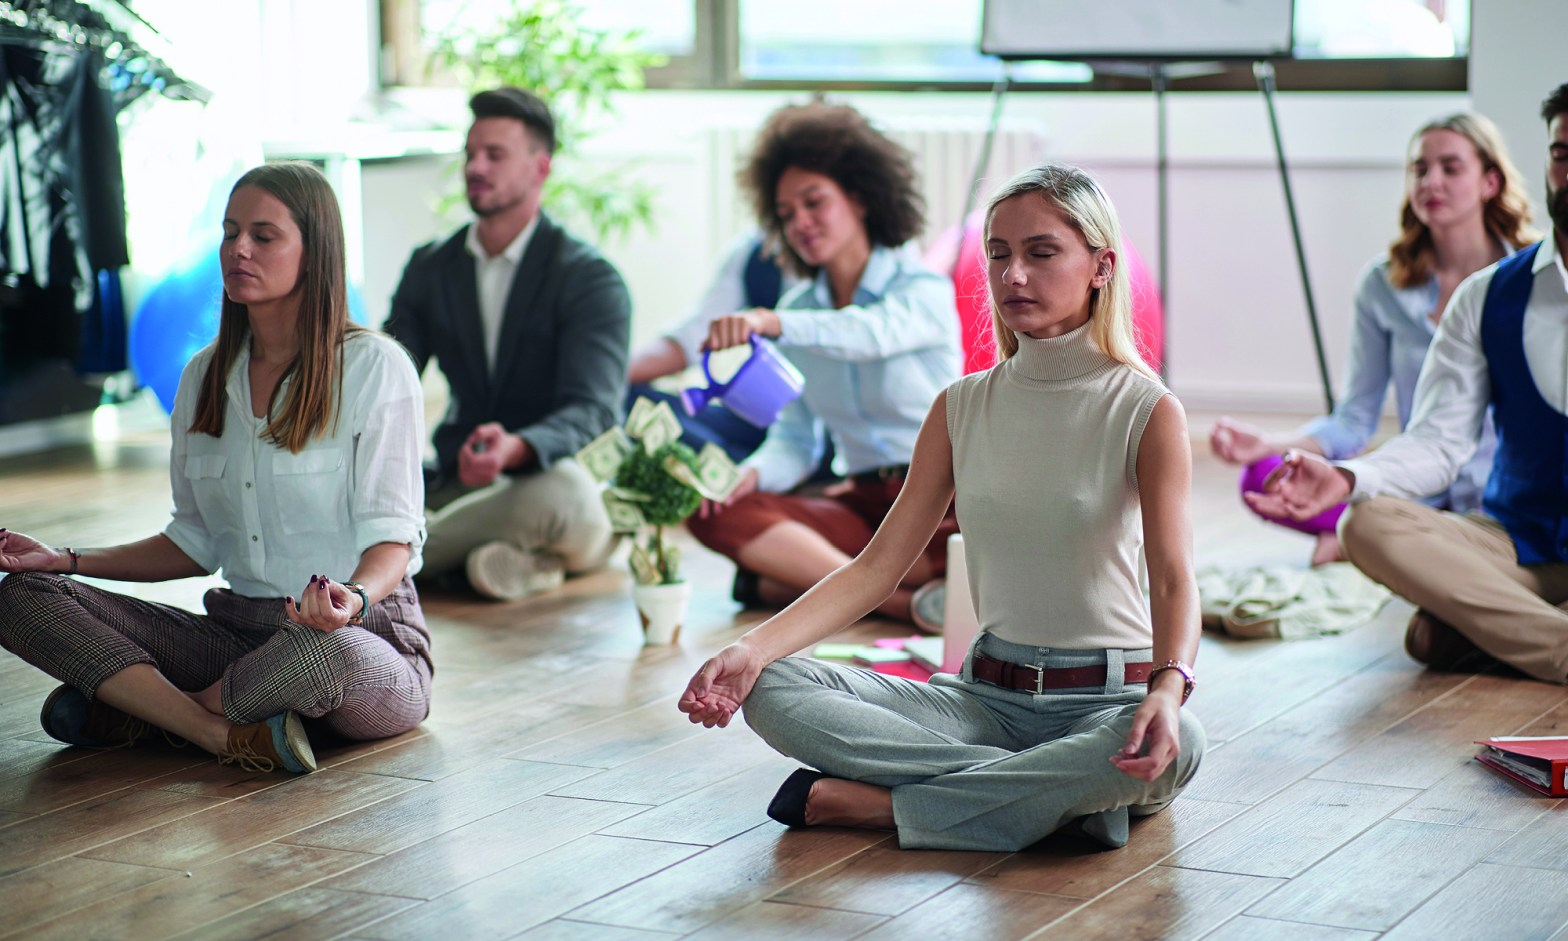 Wellbeing in the office